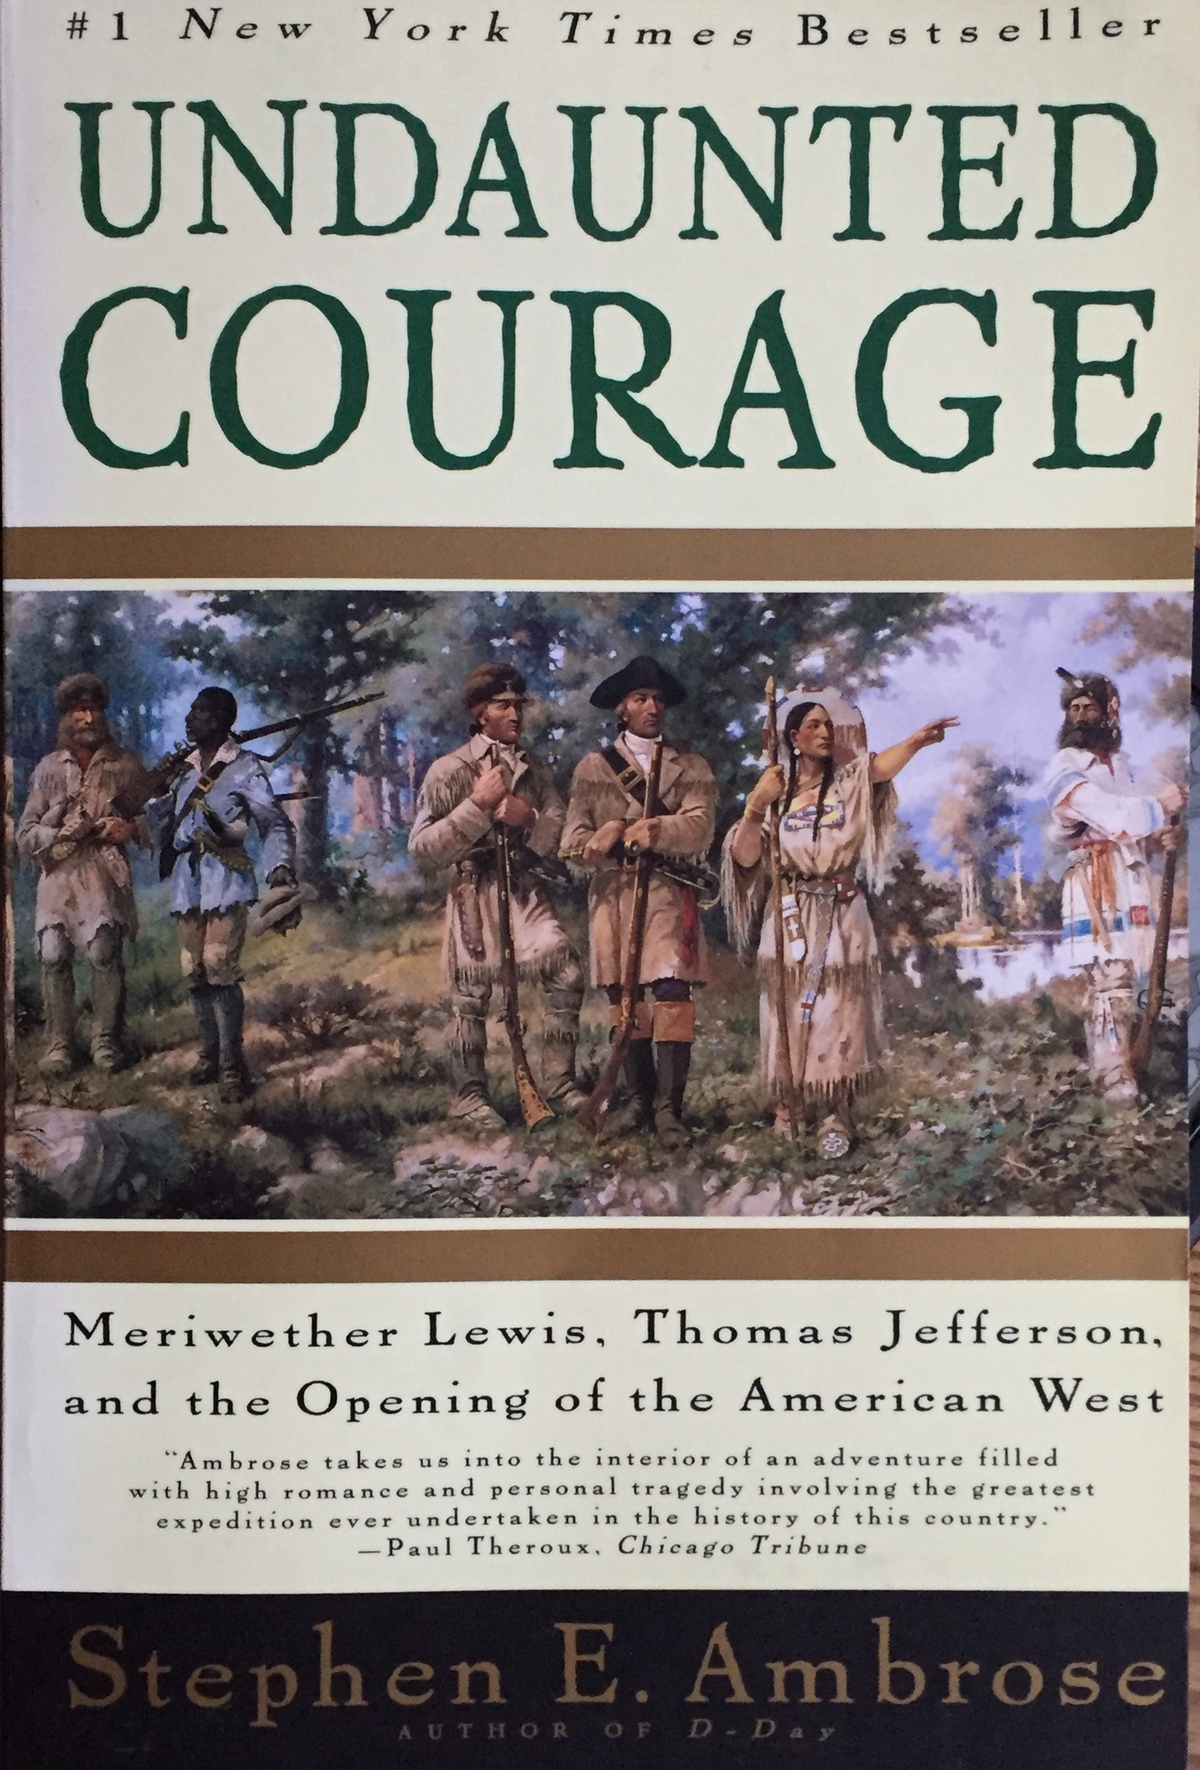 """The cover of the book """"Undaunted Courage"""" by Stephen Ambrose."""